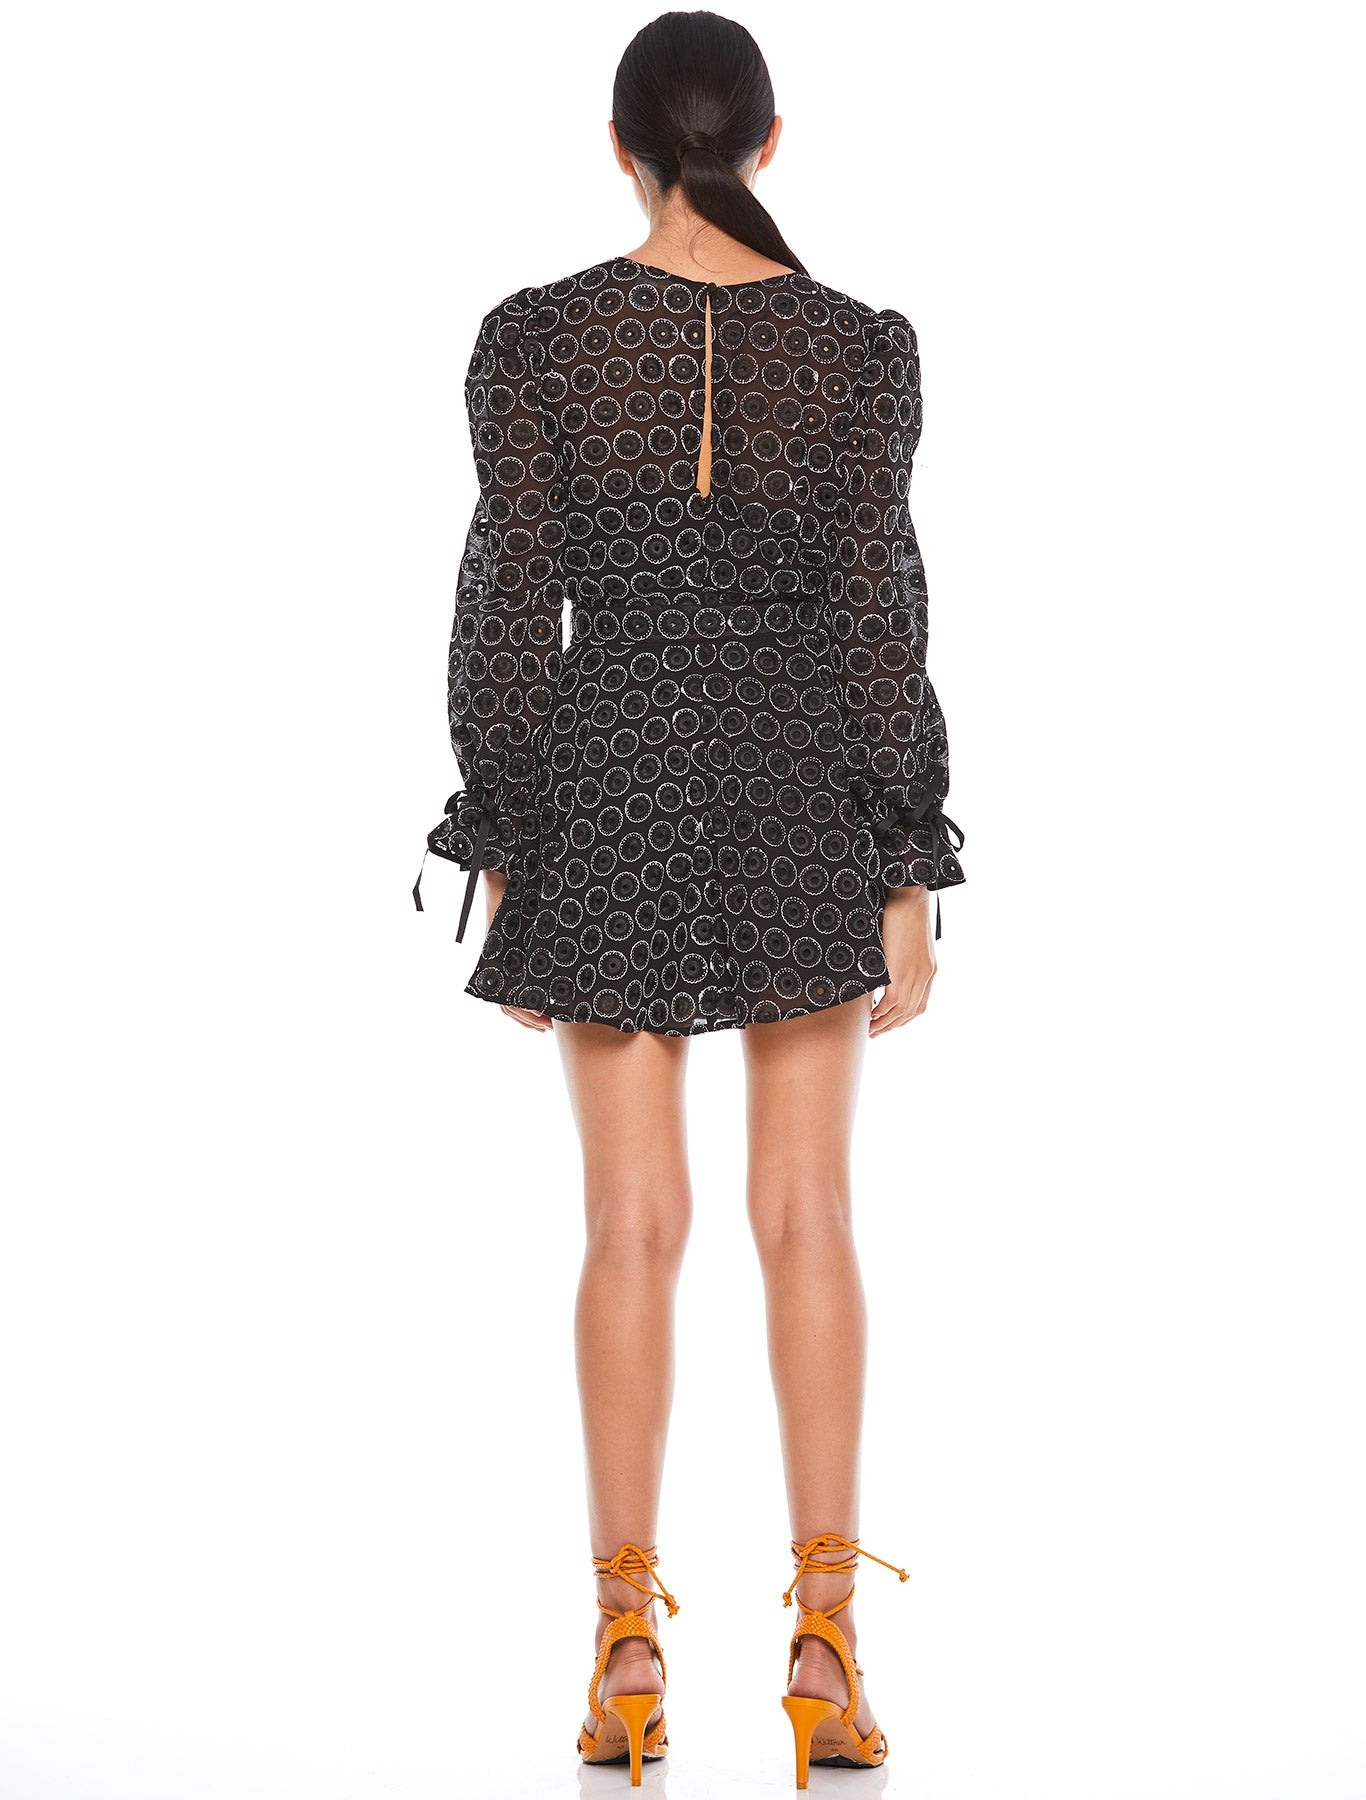 EBONY L/S MINI DRESS